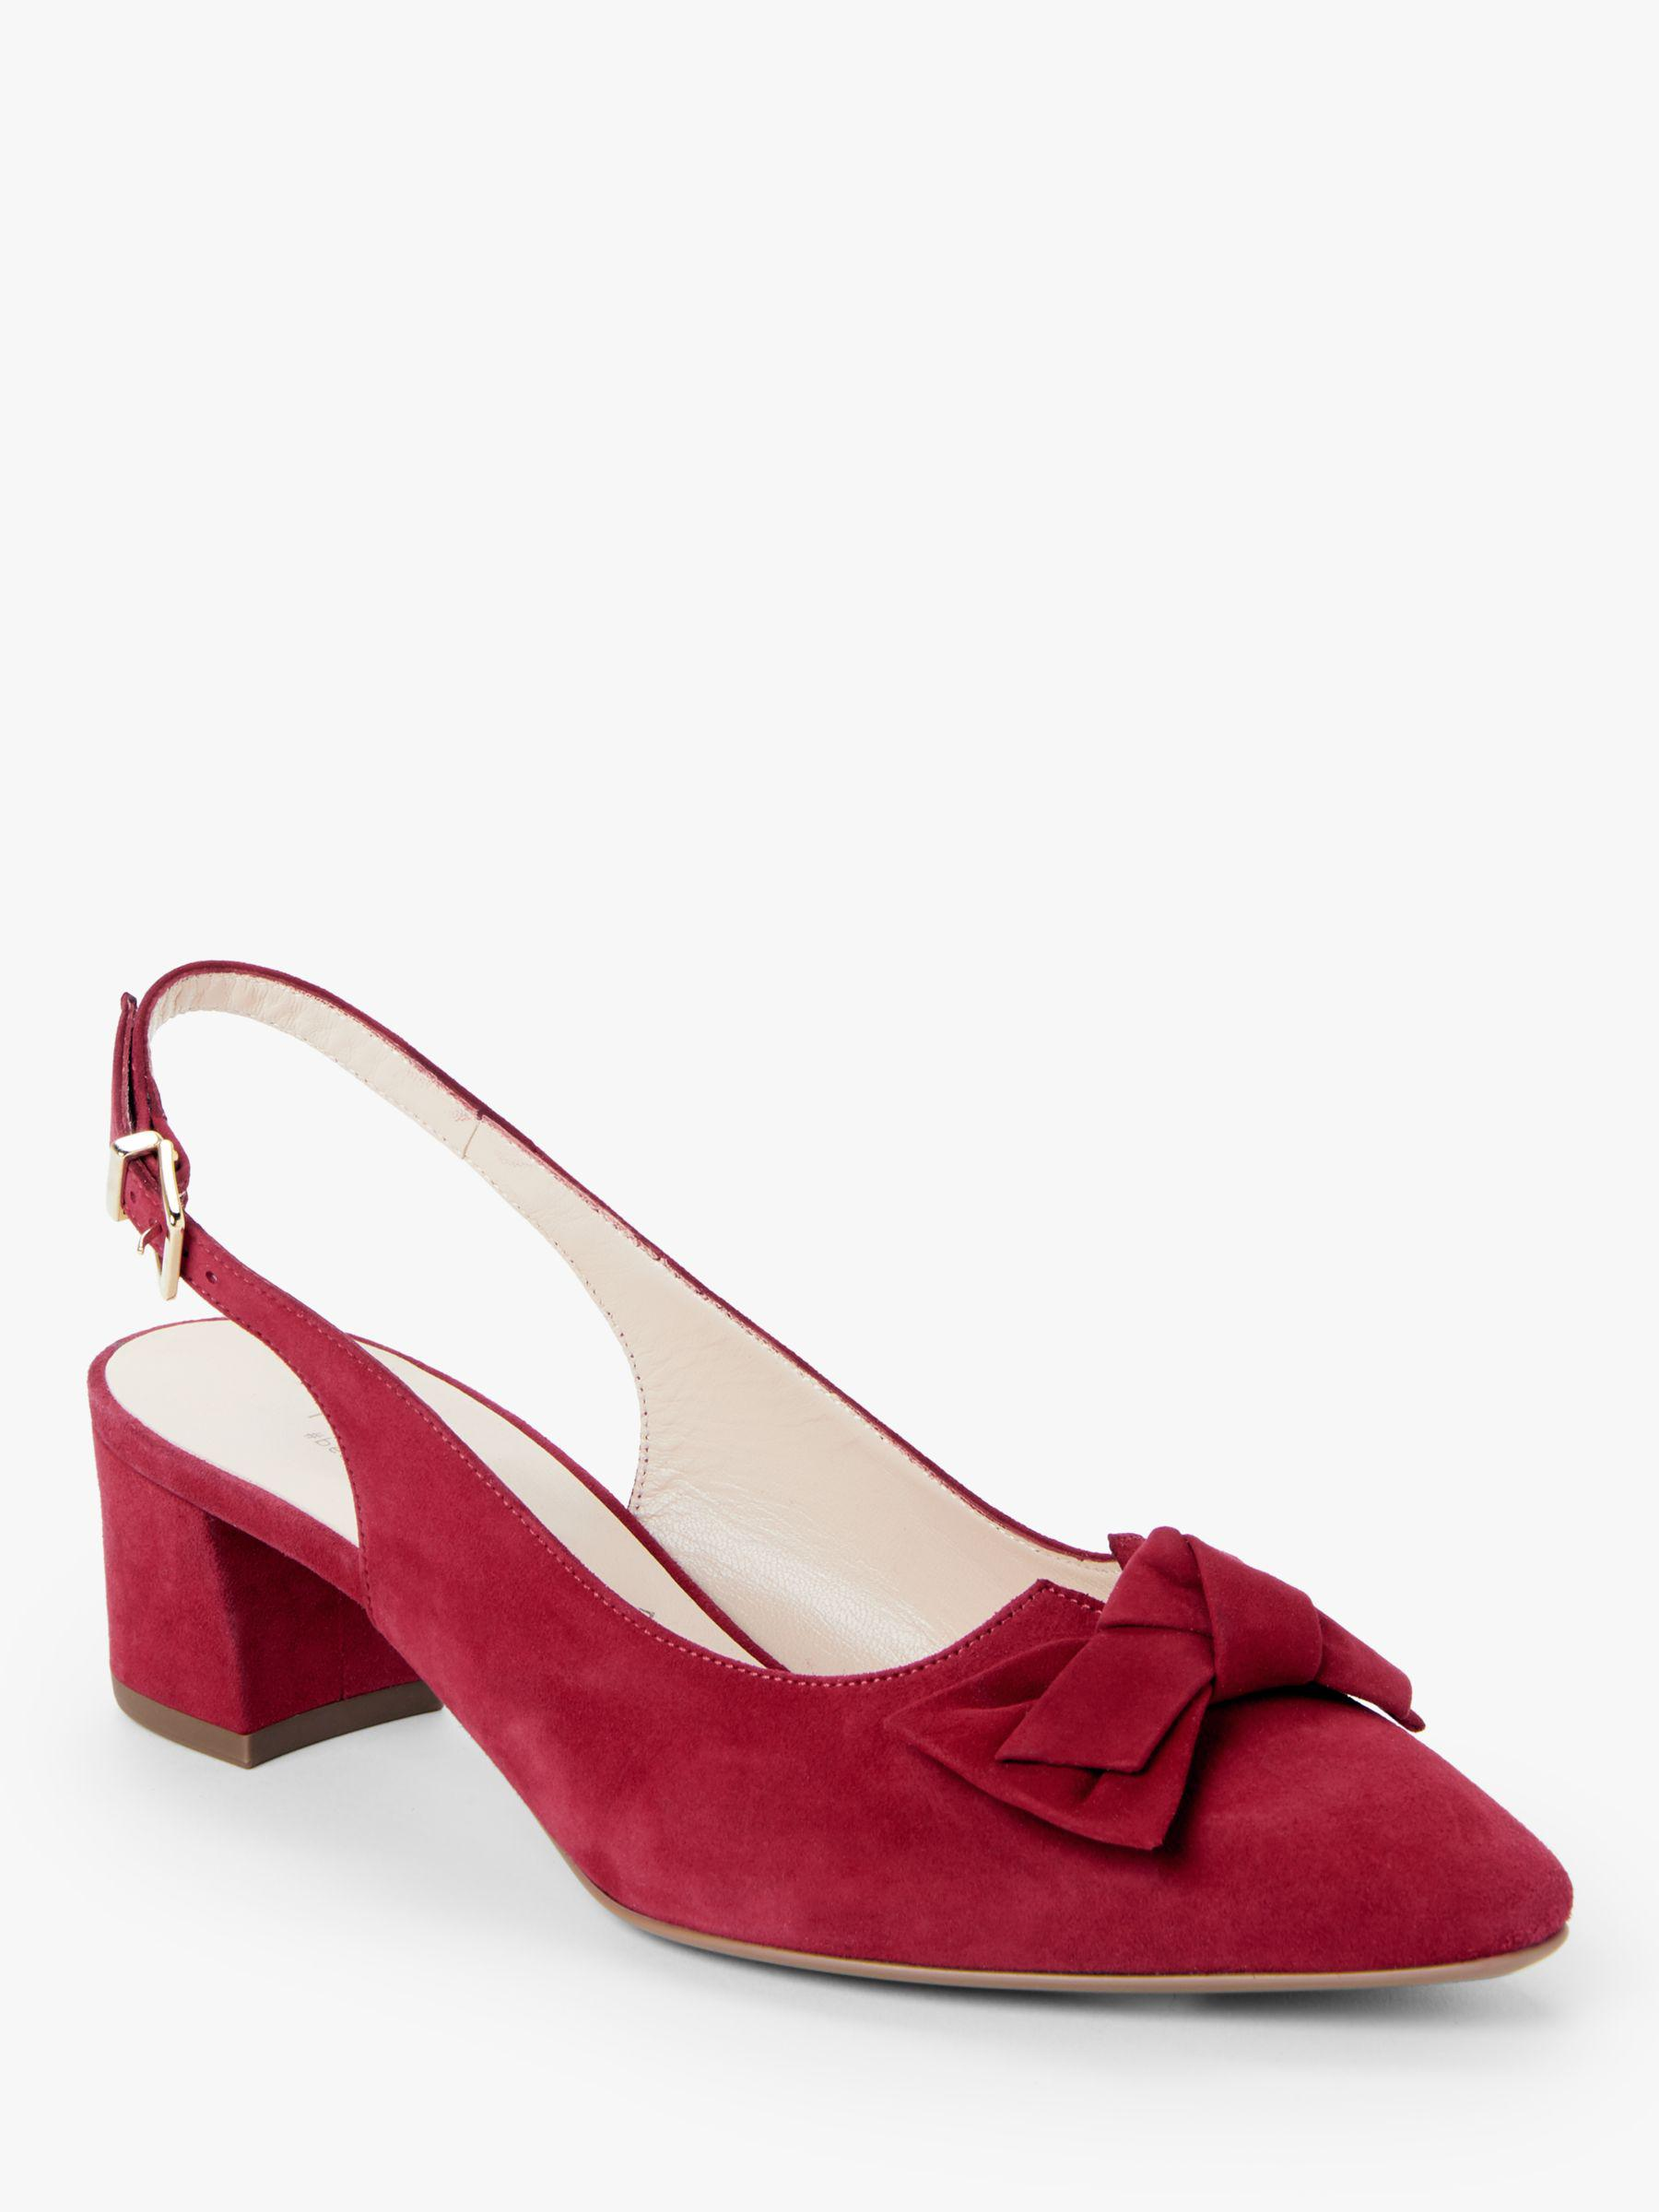 ca07194b757 Peter Kaiser Bojana Bow Slingback Court Shoes in Red - Lyst